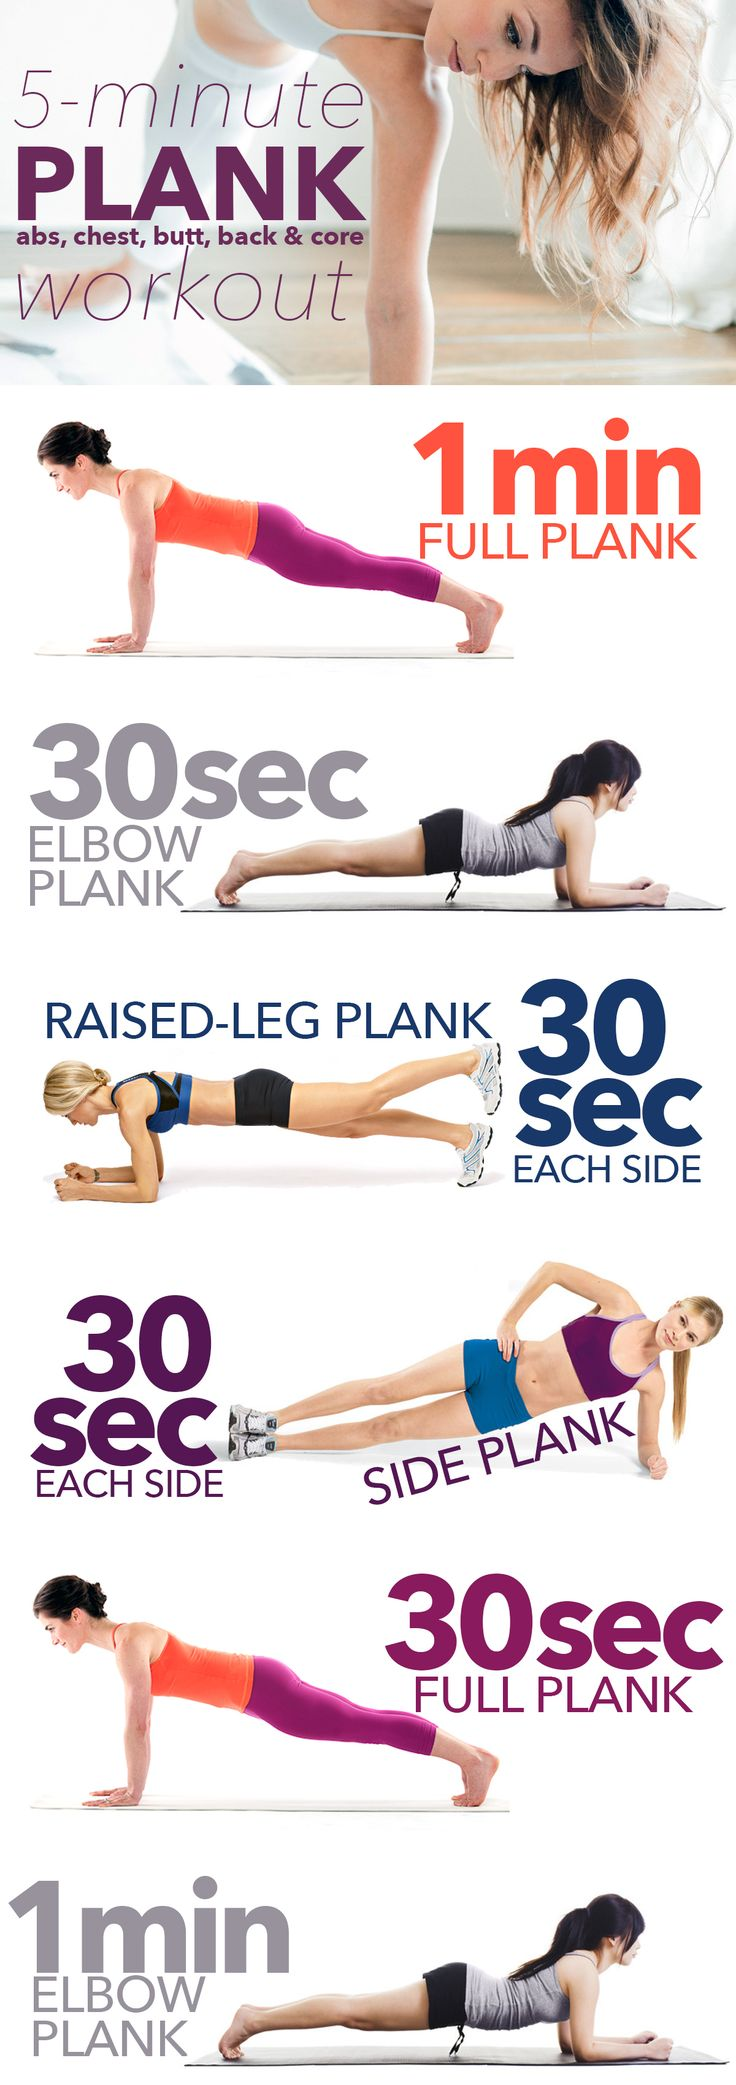 5-minute-plank-workout-infographic.jpg 1 200×3 400 pikseliä